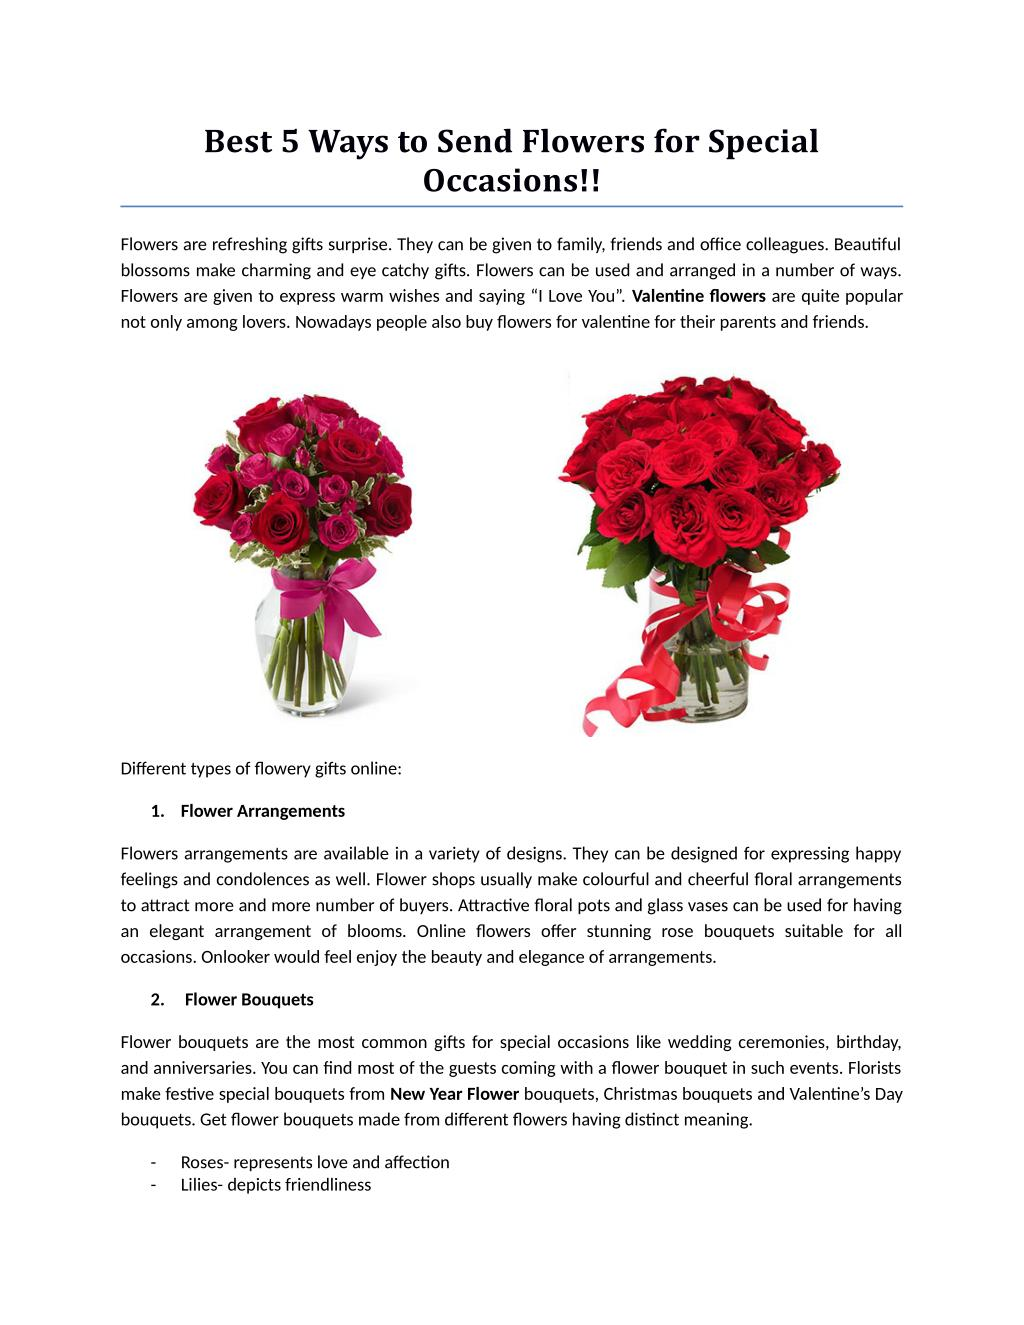 Best 5 Ways To Send Flowers For Special Occasions